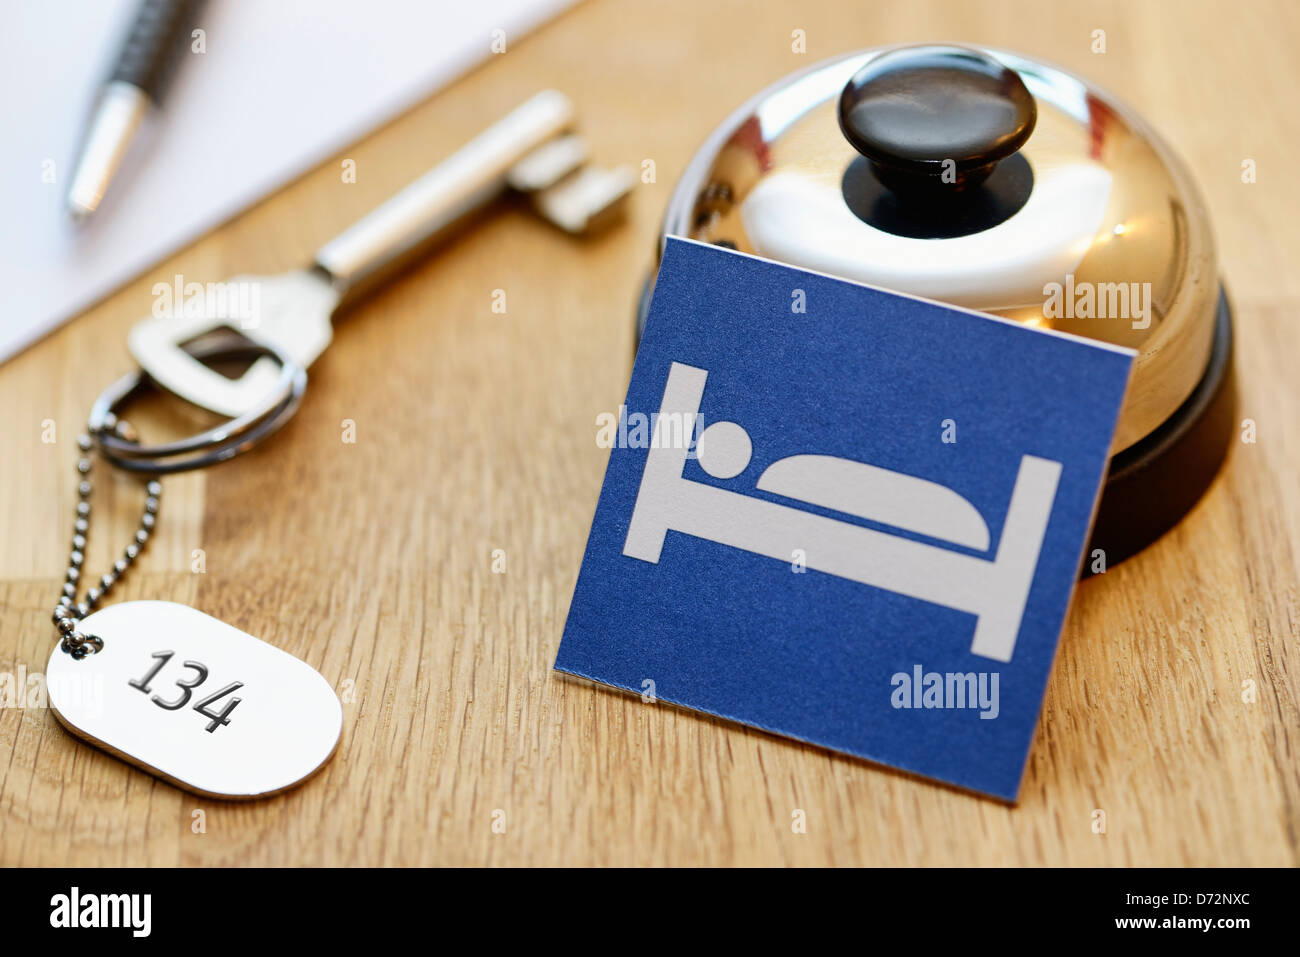 Bell and room key one of an adoption, symbolic photo Bed-expensive - Stock Image